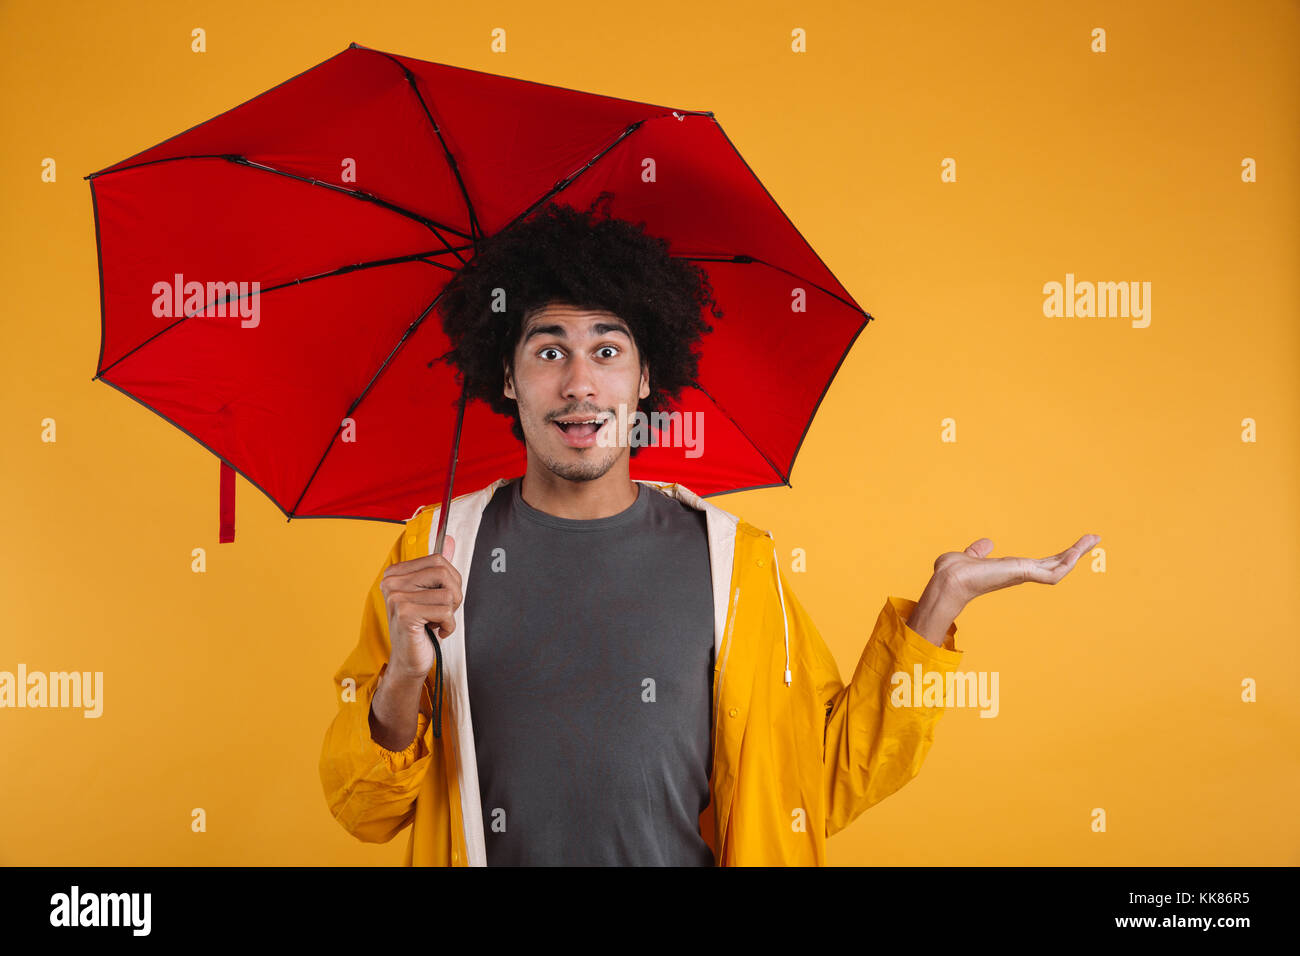 Portrait of an excited afro american man dressed in raincoat holding umbrella while standing with outstretched hand Stock Photo